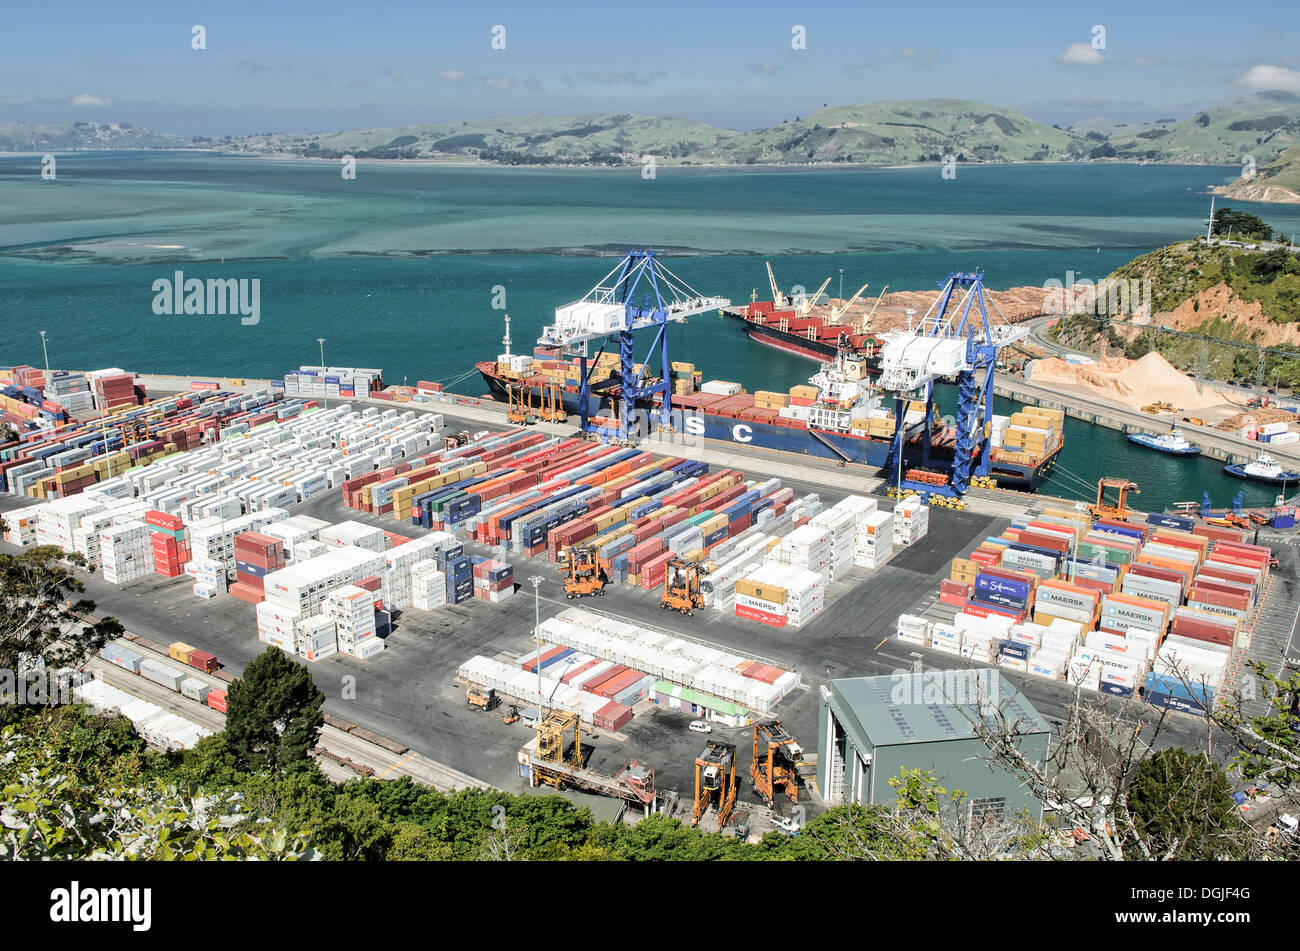 Port Chalmers, cargo port, container terminal, Dunedin, South Island, New Zealand, Oceania - Stock Image